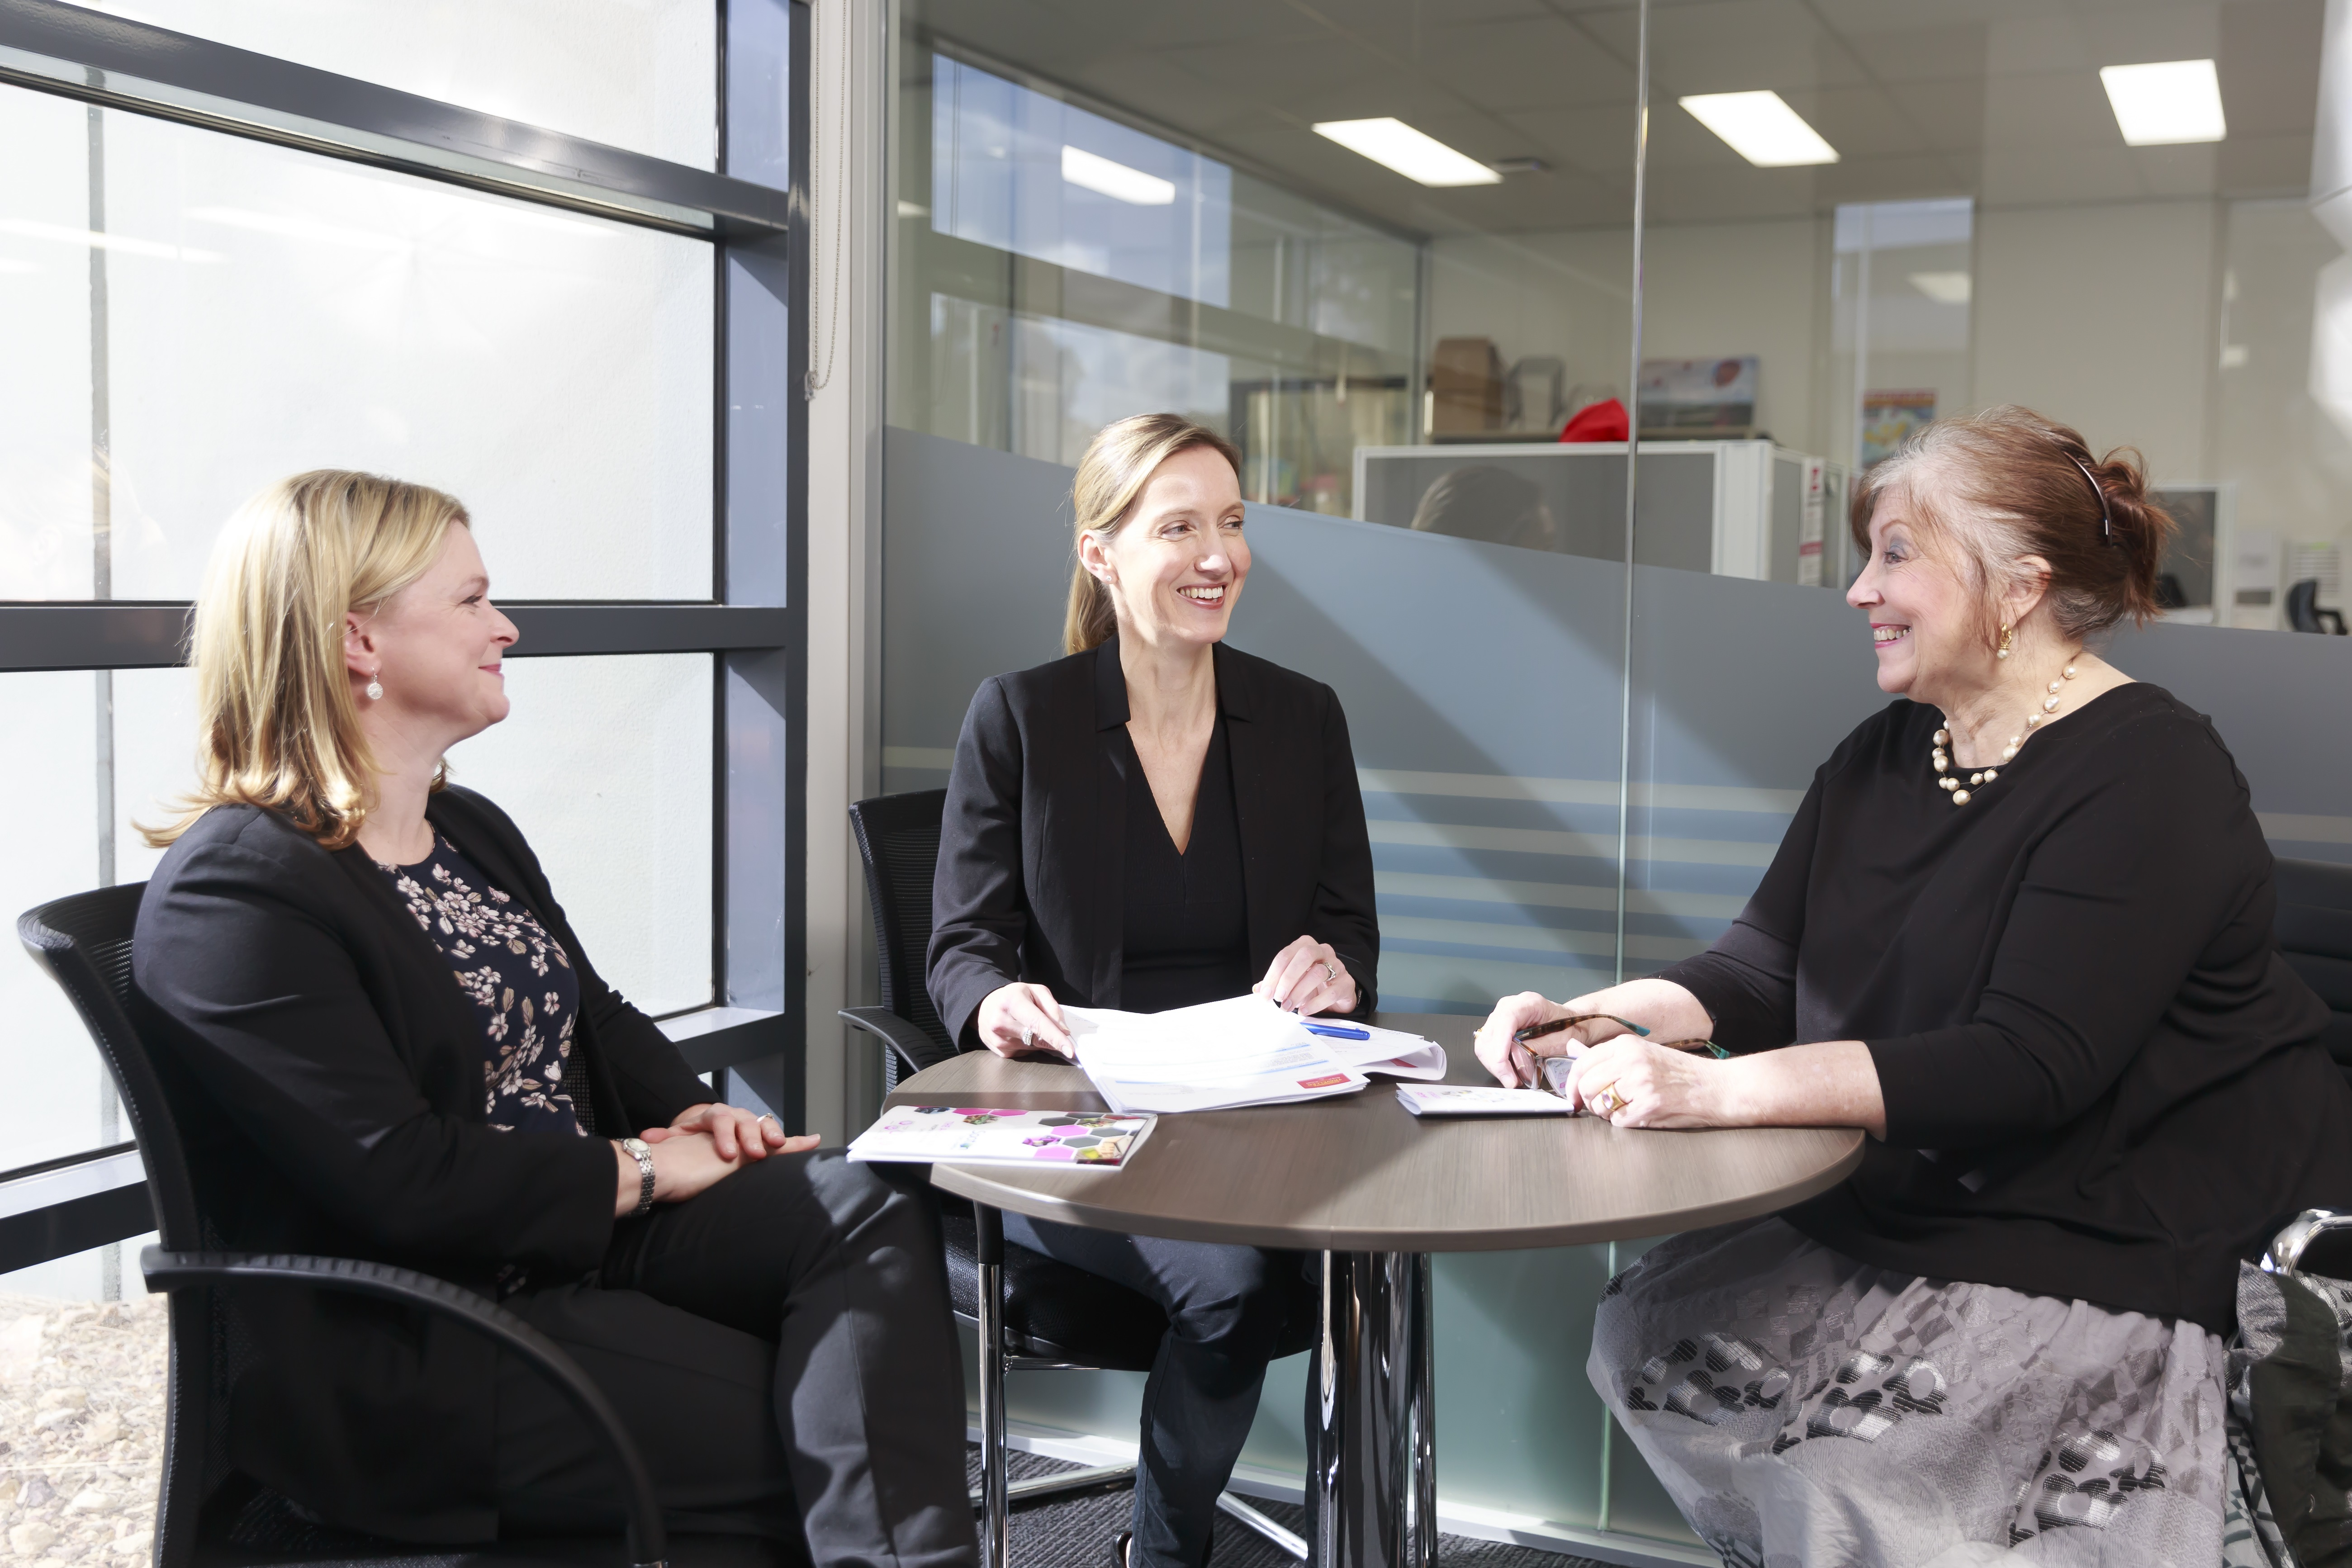 Three people in meeting